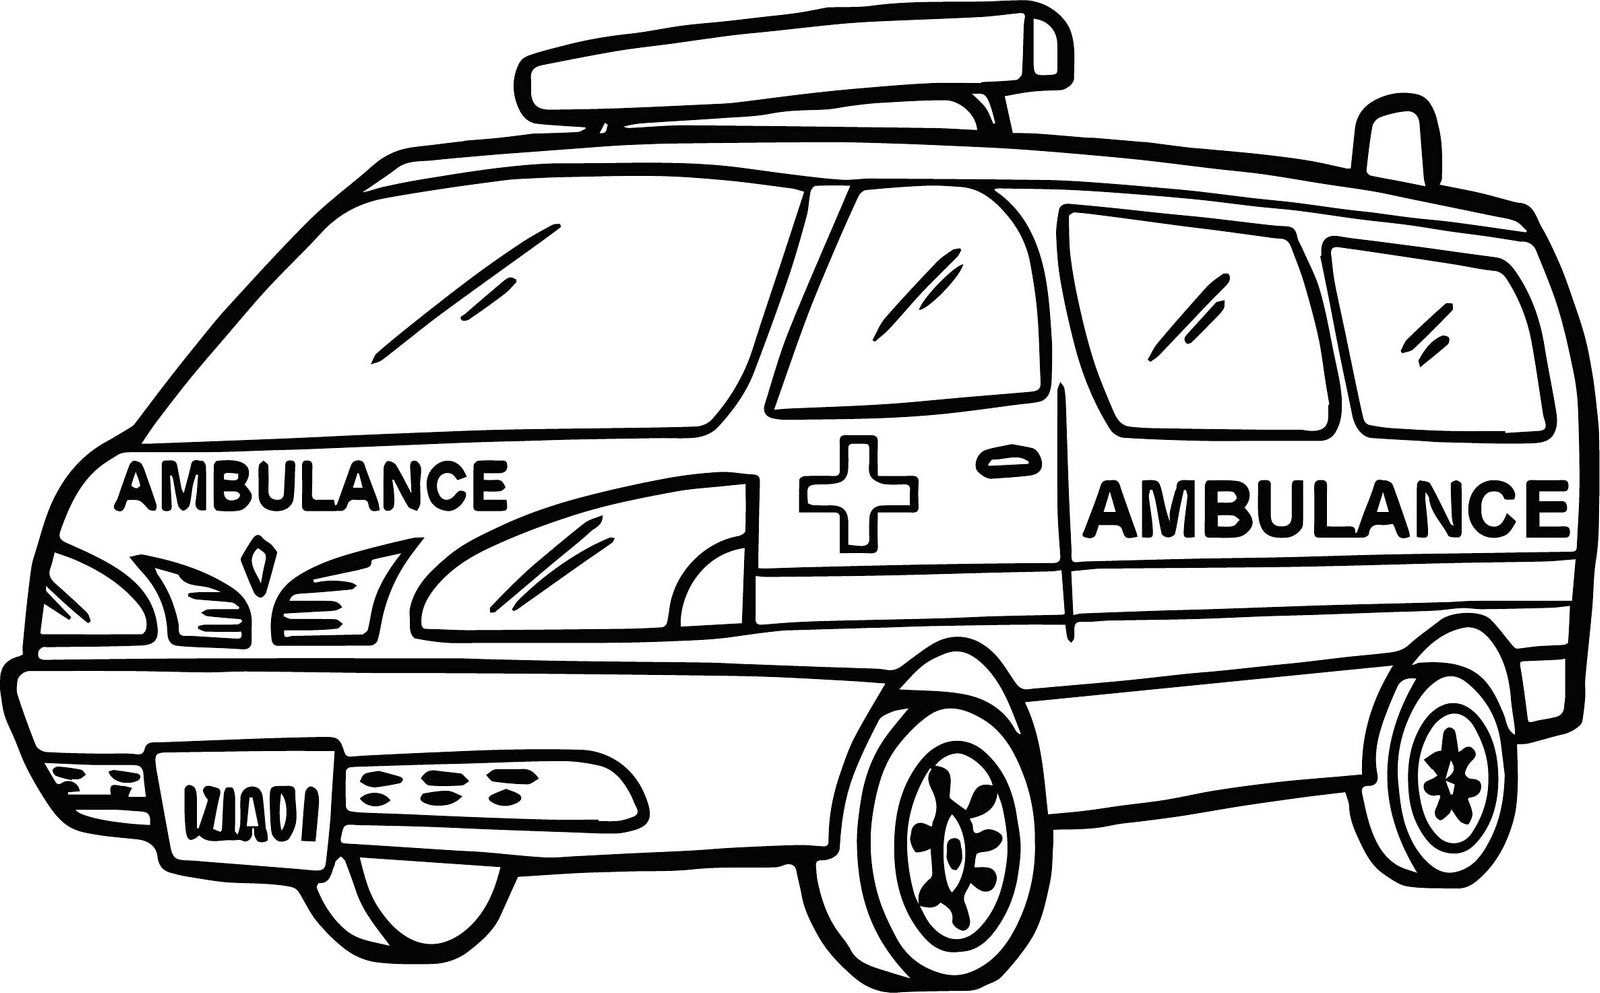 Each Grayscale Ambulance Coloring Page Is Designed With Beautiful High Resolution Photographs To Color Any Wa Coloring Books Ambulance Coloring Pages For Kids